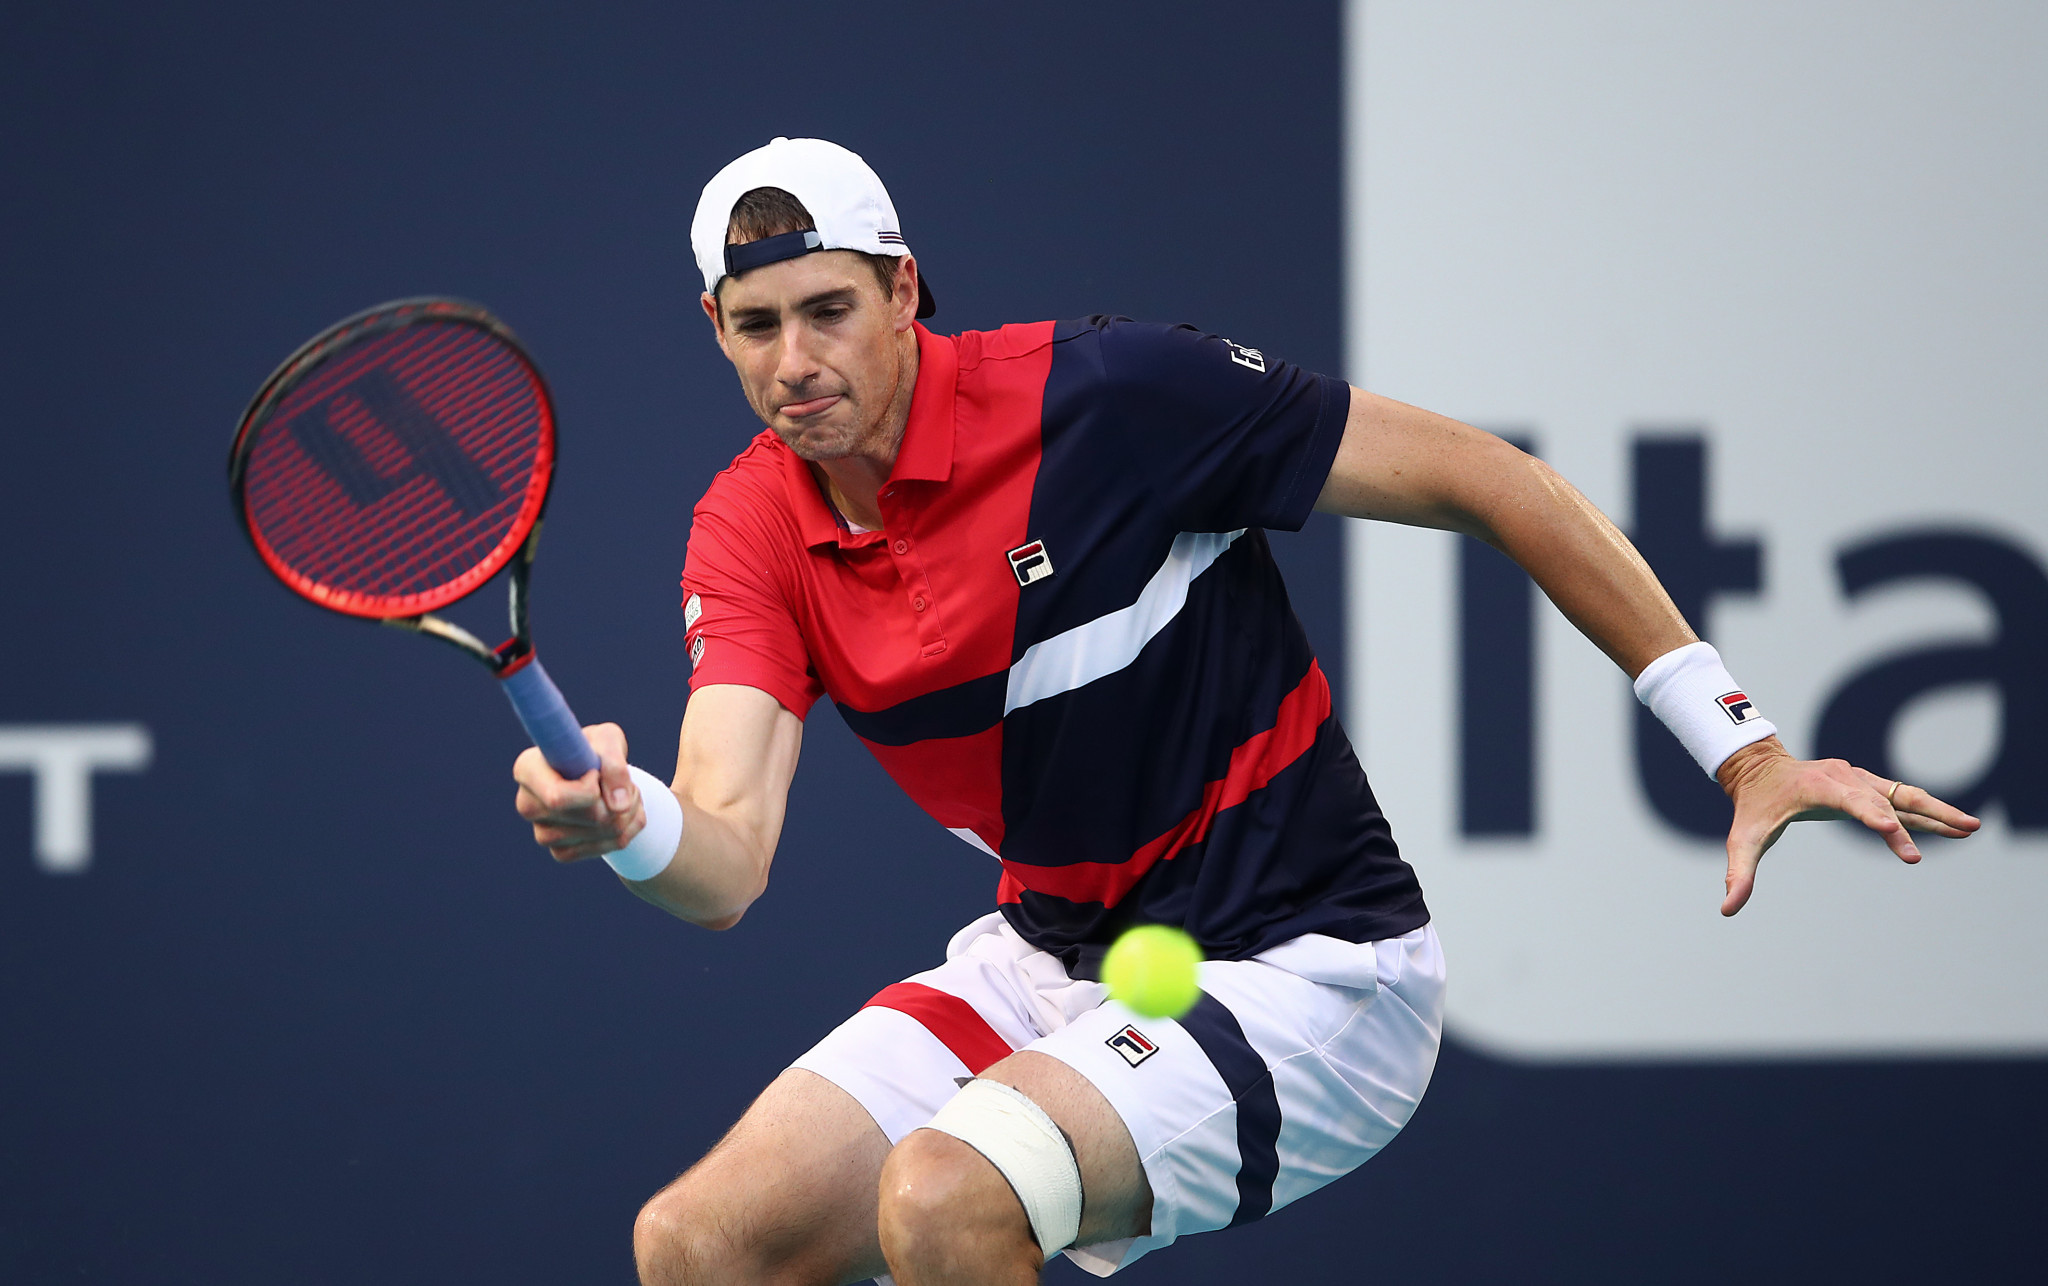 Defending champion Isner reaches Miami Open semi-finals